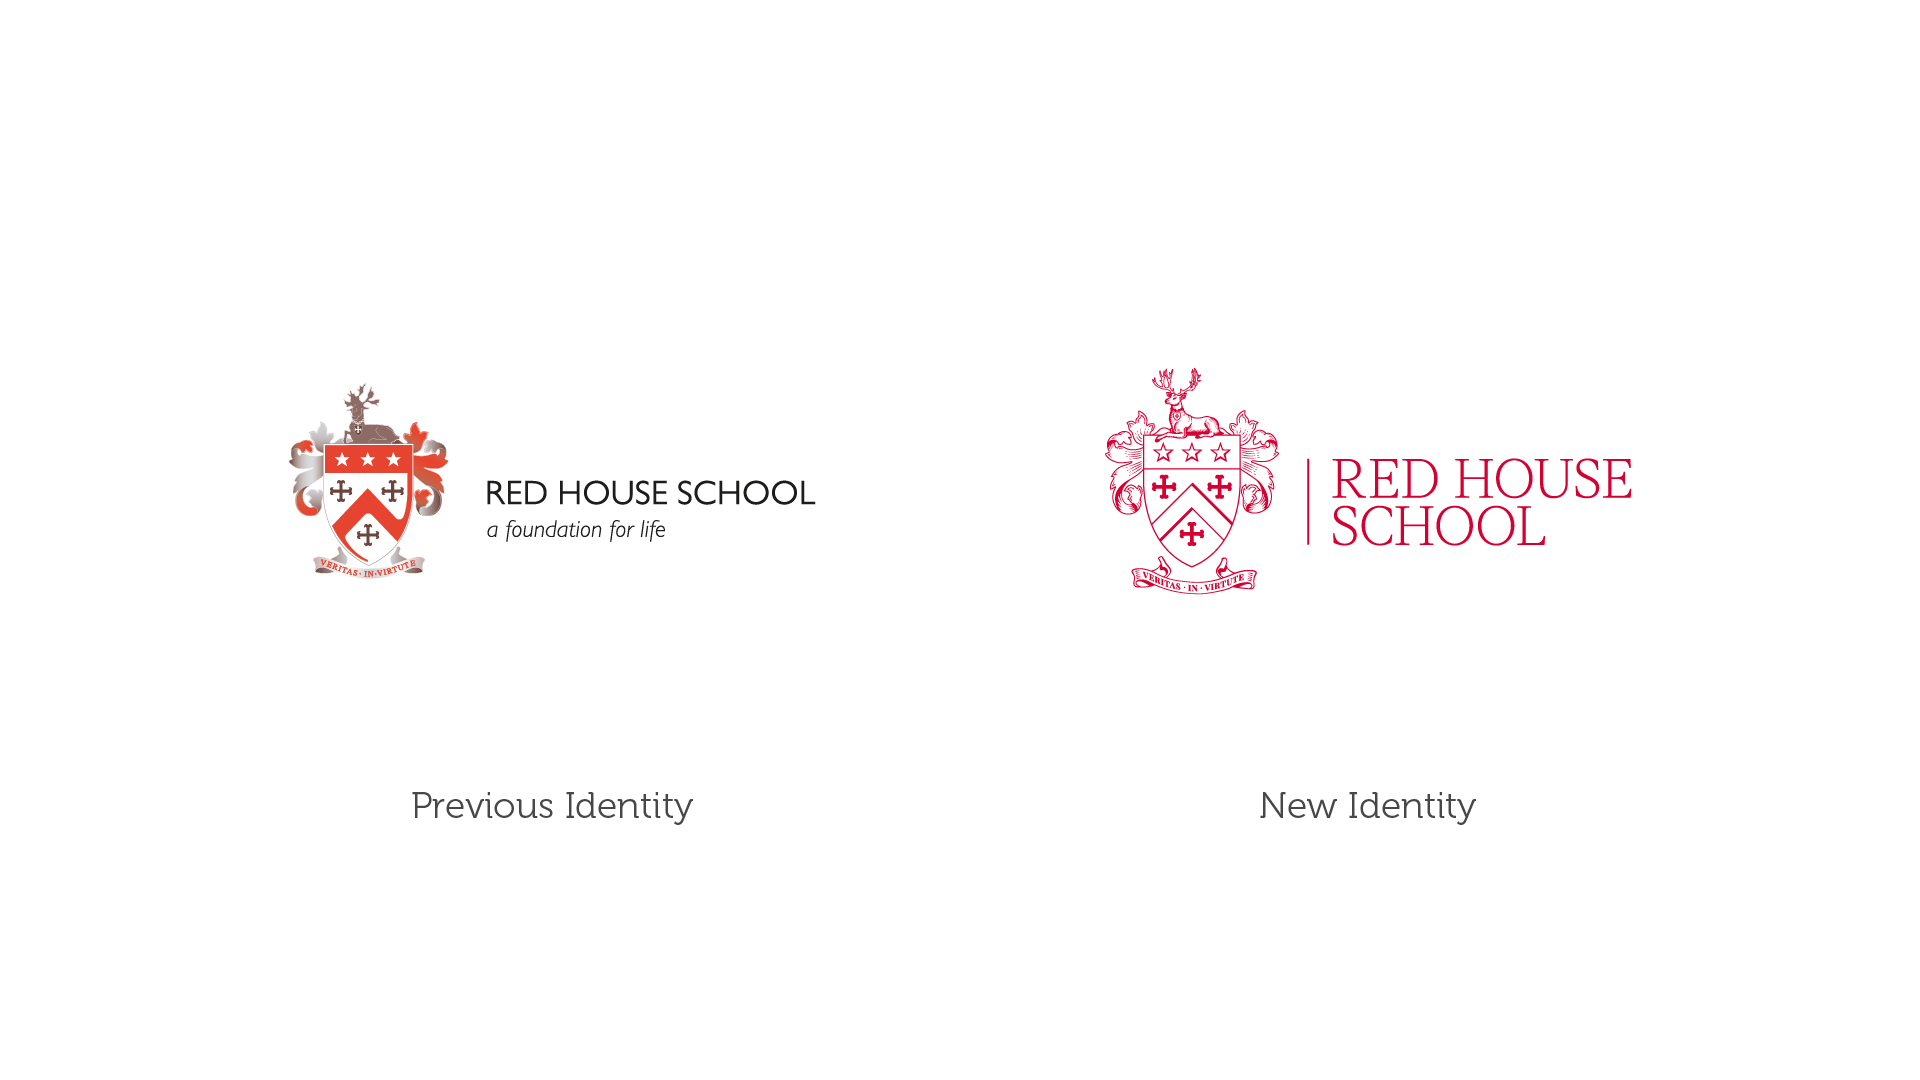 BetterBrandBuilder™ - Red House School Brand Before and After.